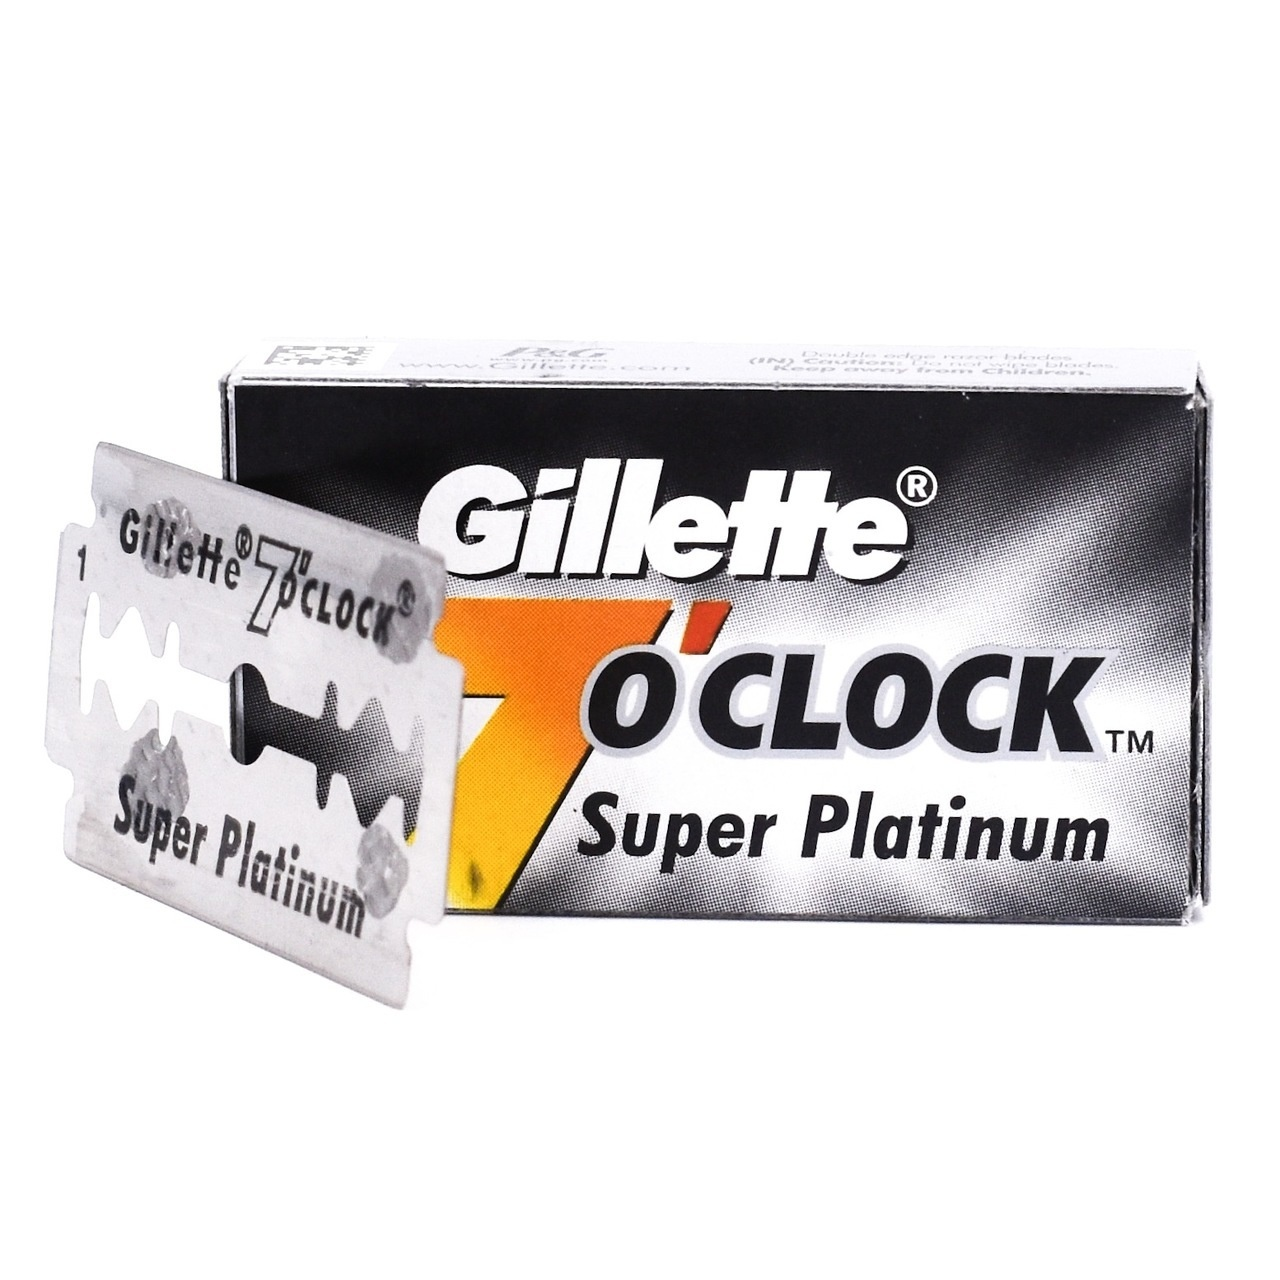 Gillette 7 O'Clock Super Platinum Double Edge Blades